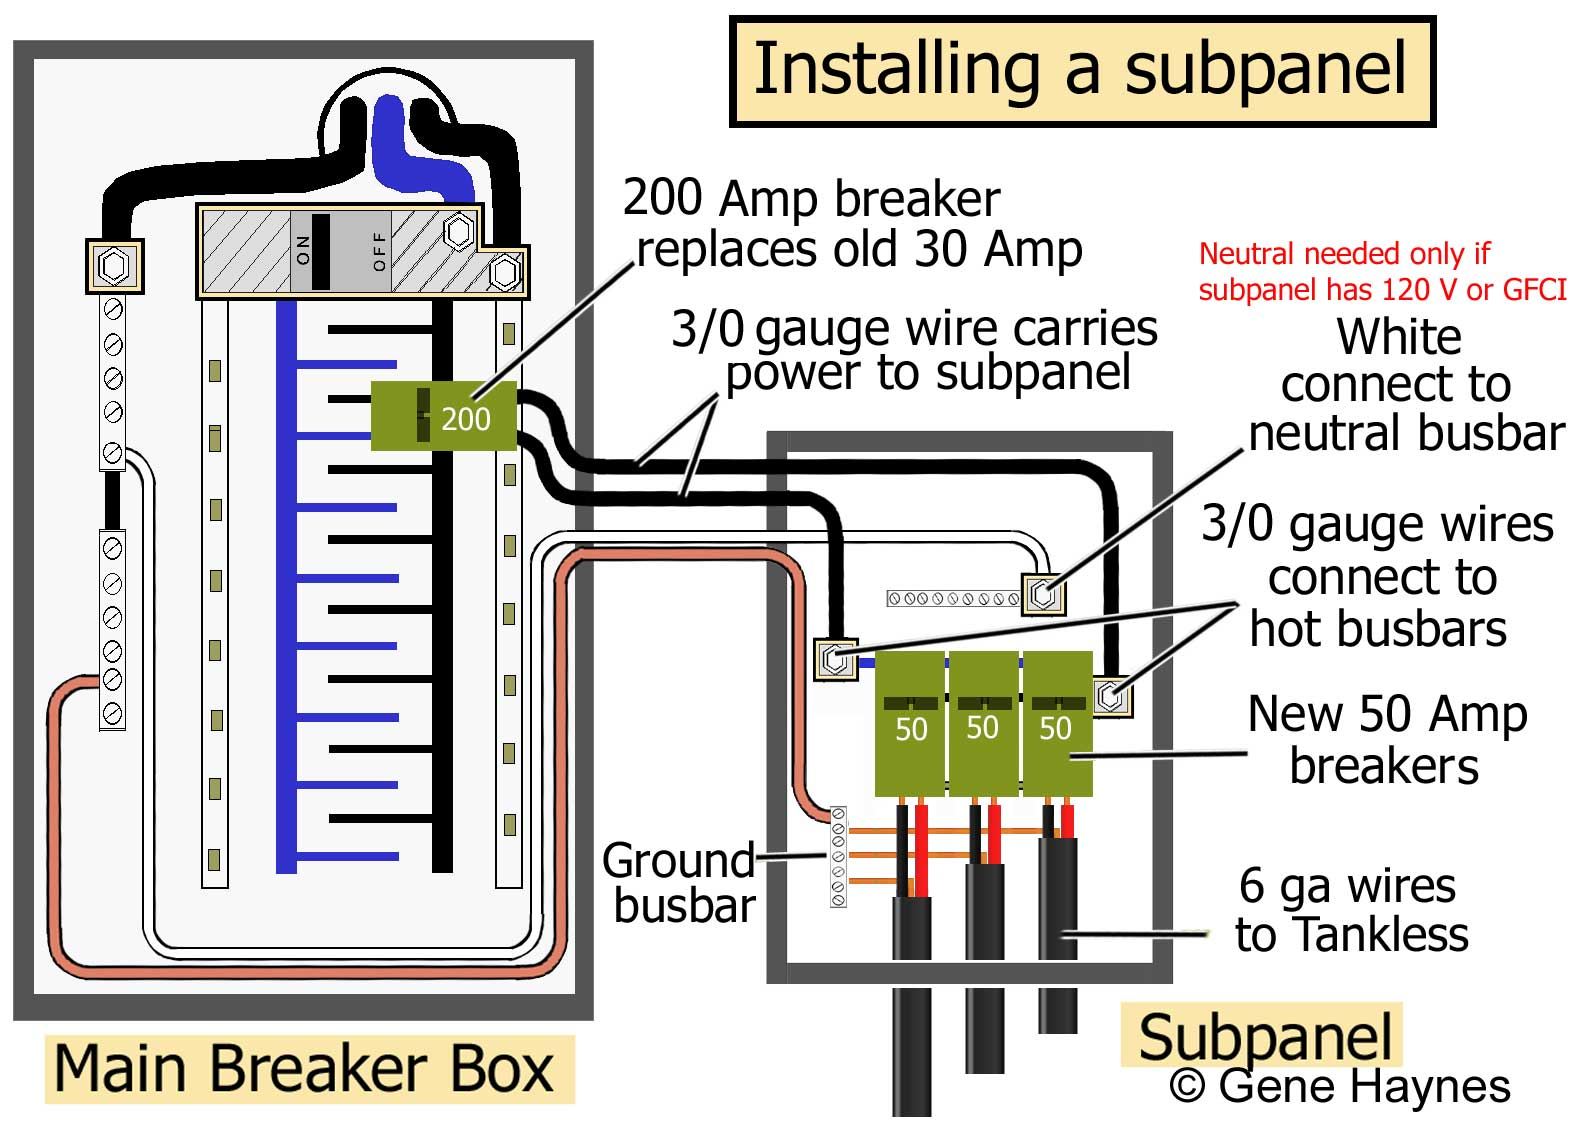 how to install a subpanel how to install main lug 60 Amp AC Disconnect larger image, 150 amp subpanel with 240volt and 120volt 150 amp breaker uses 2 0 wire neutral wire needed only if subpanel has 120volt breakers or gfci